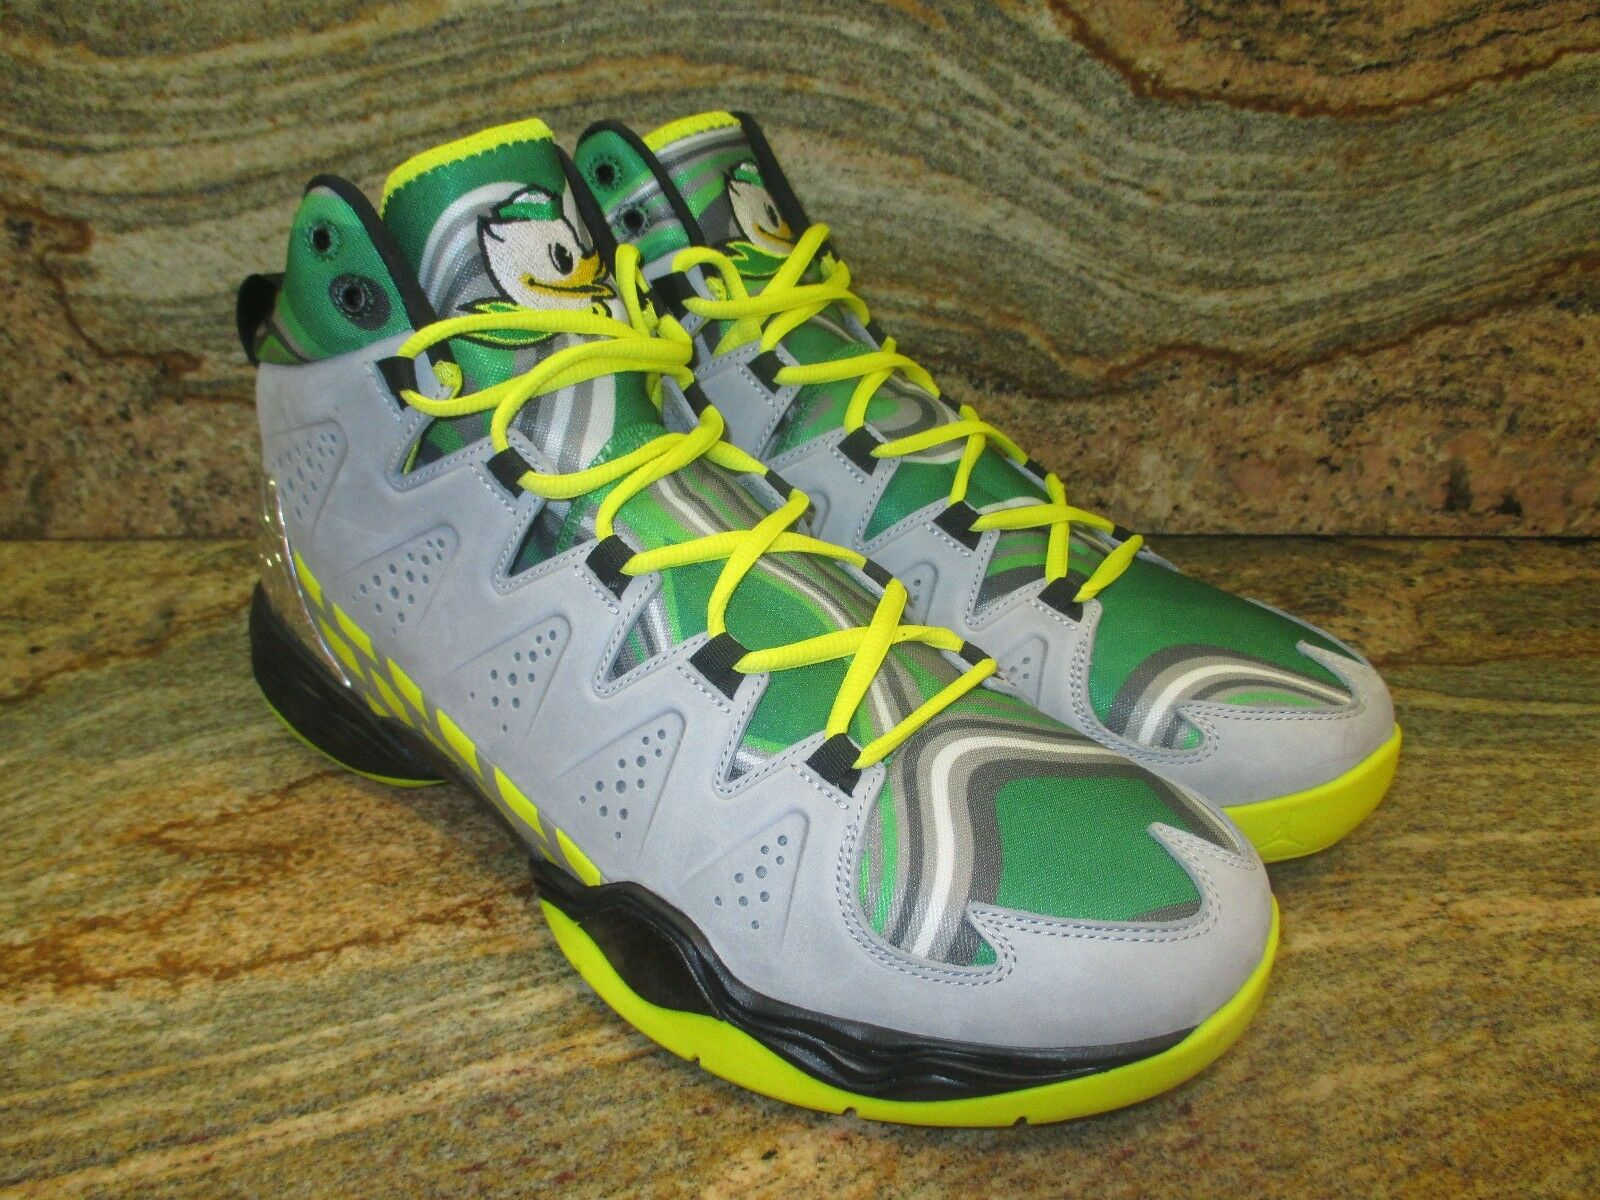 2014 Nike Air Jordan Melo M10 Oregon Duck PE SZ SZ SZ 13 Unreleased Promo Sample Retro f4ff6c